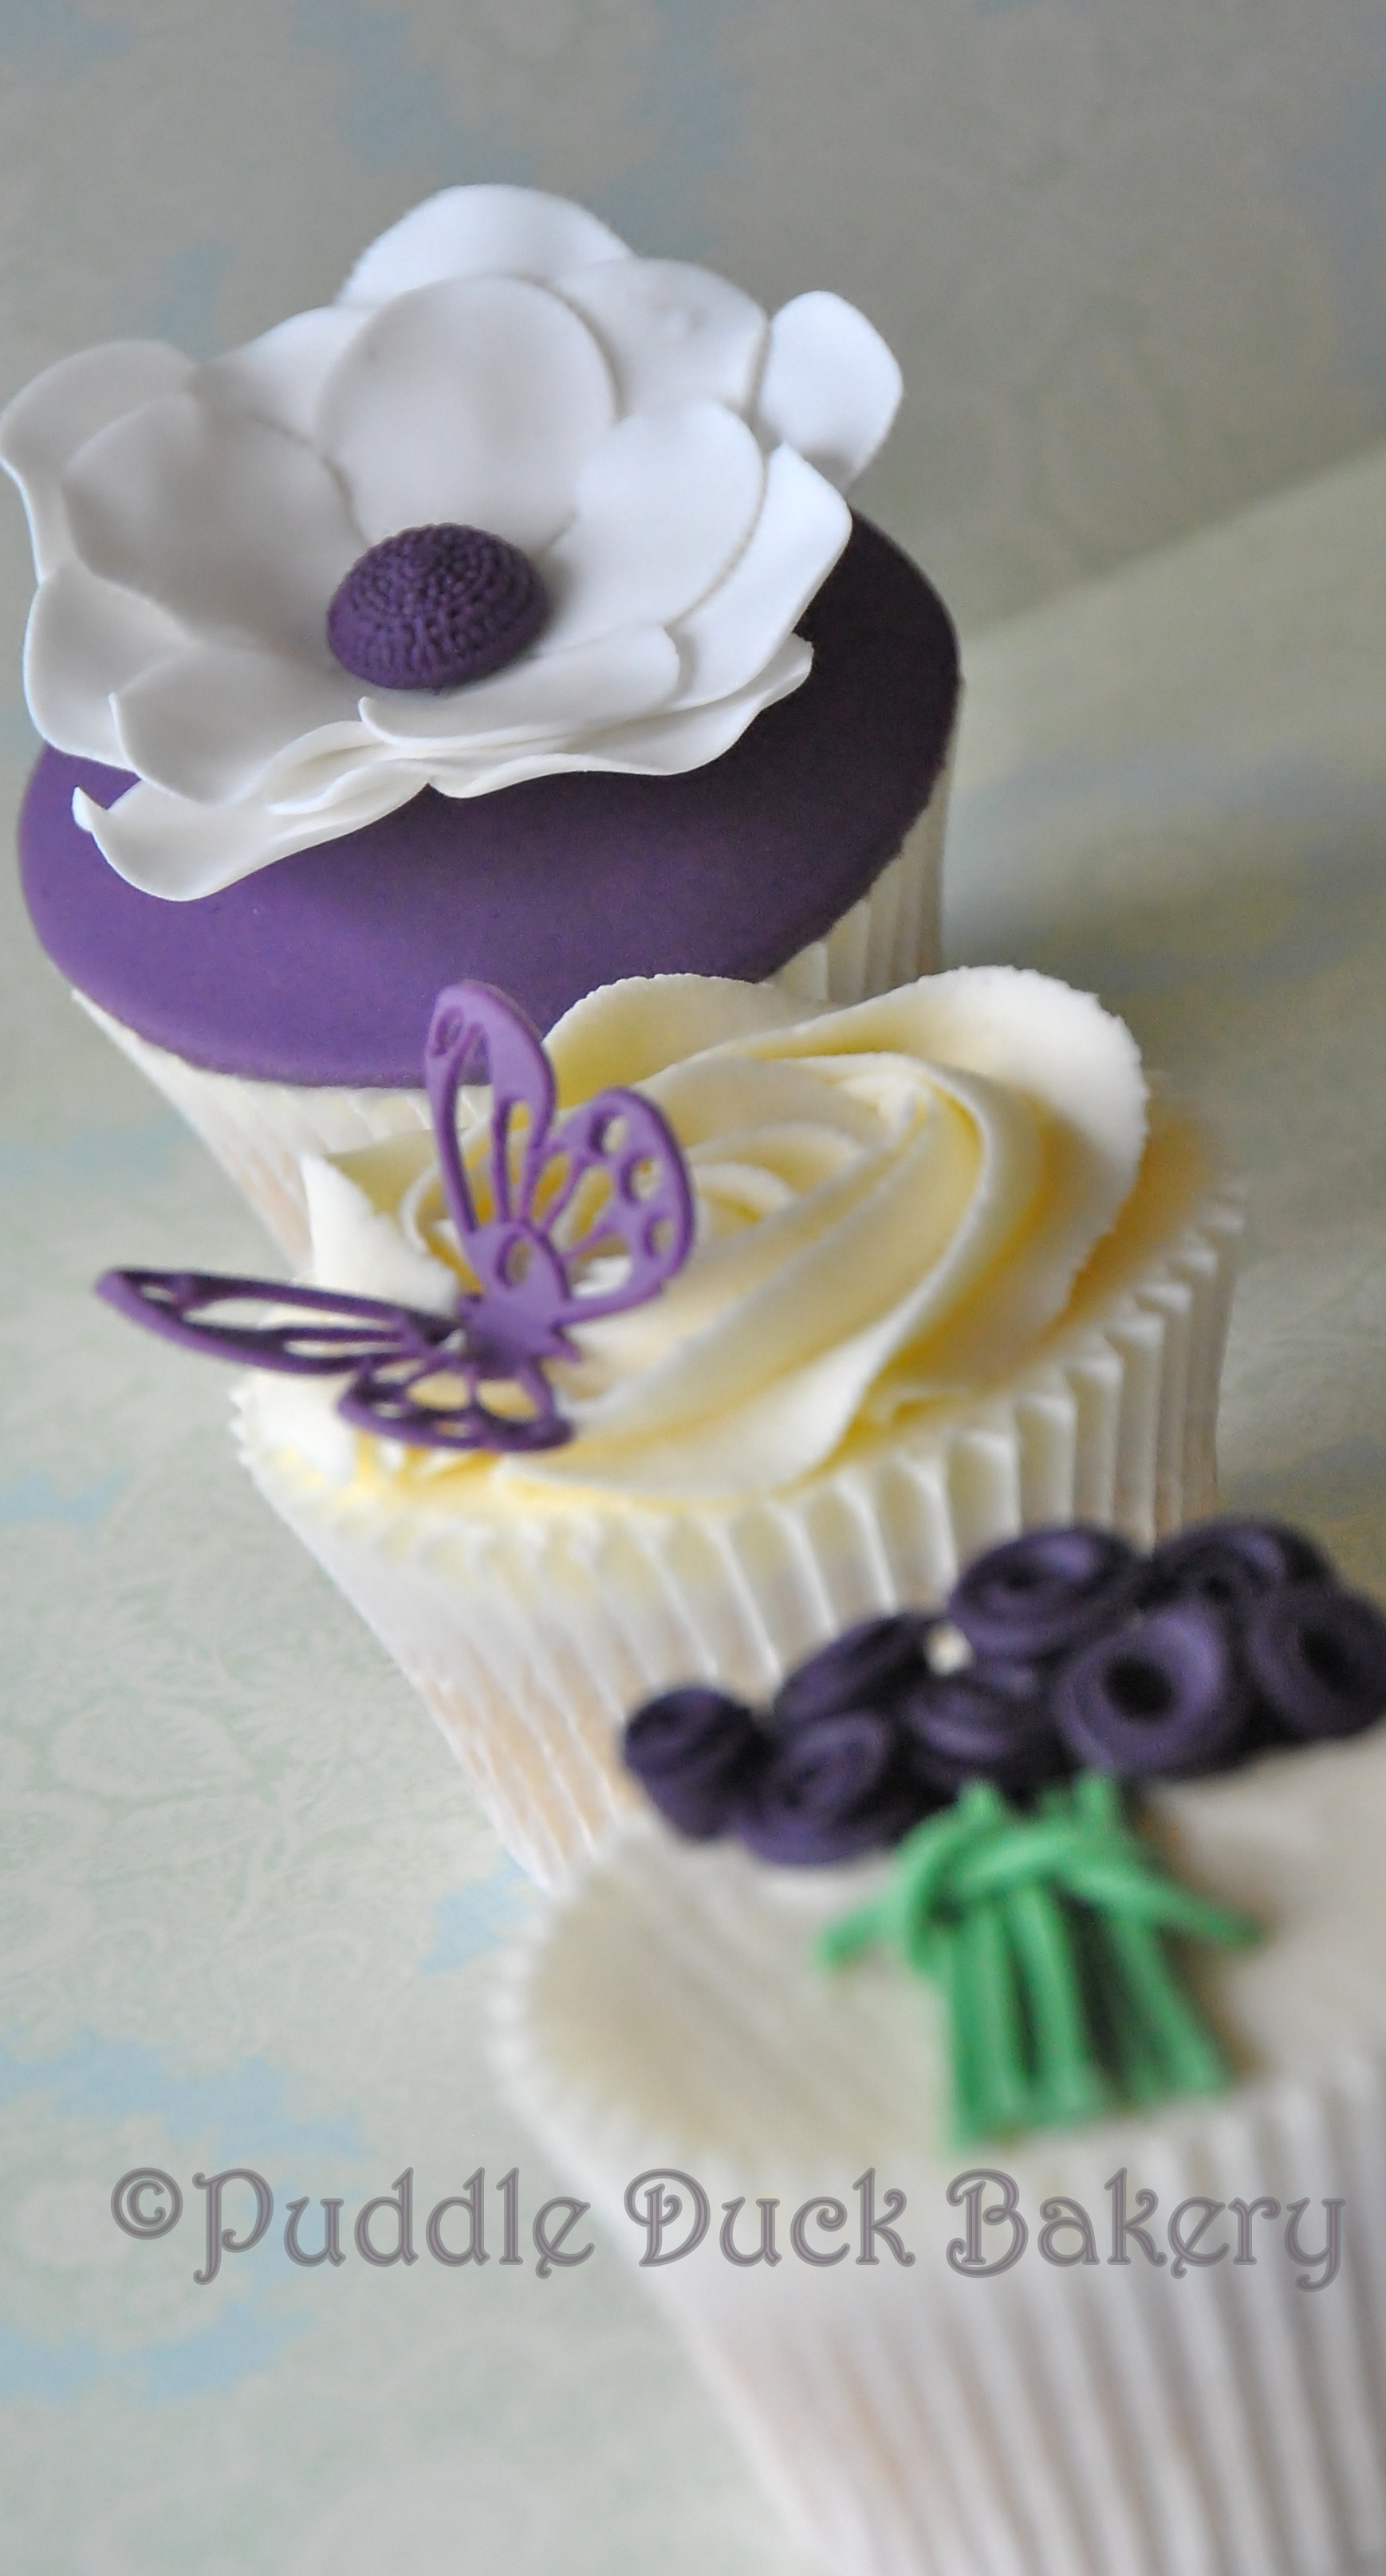 A butterfly on a cupcake